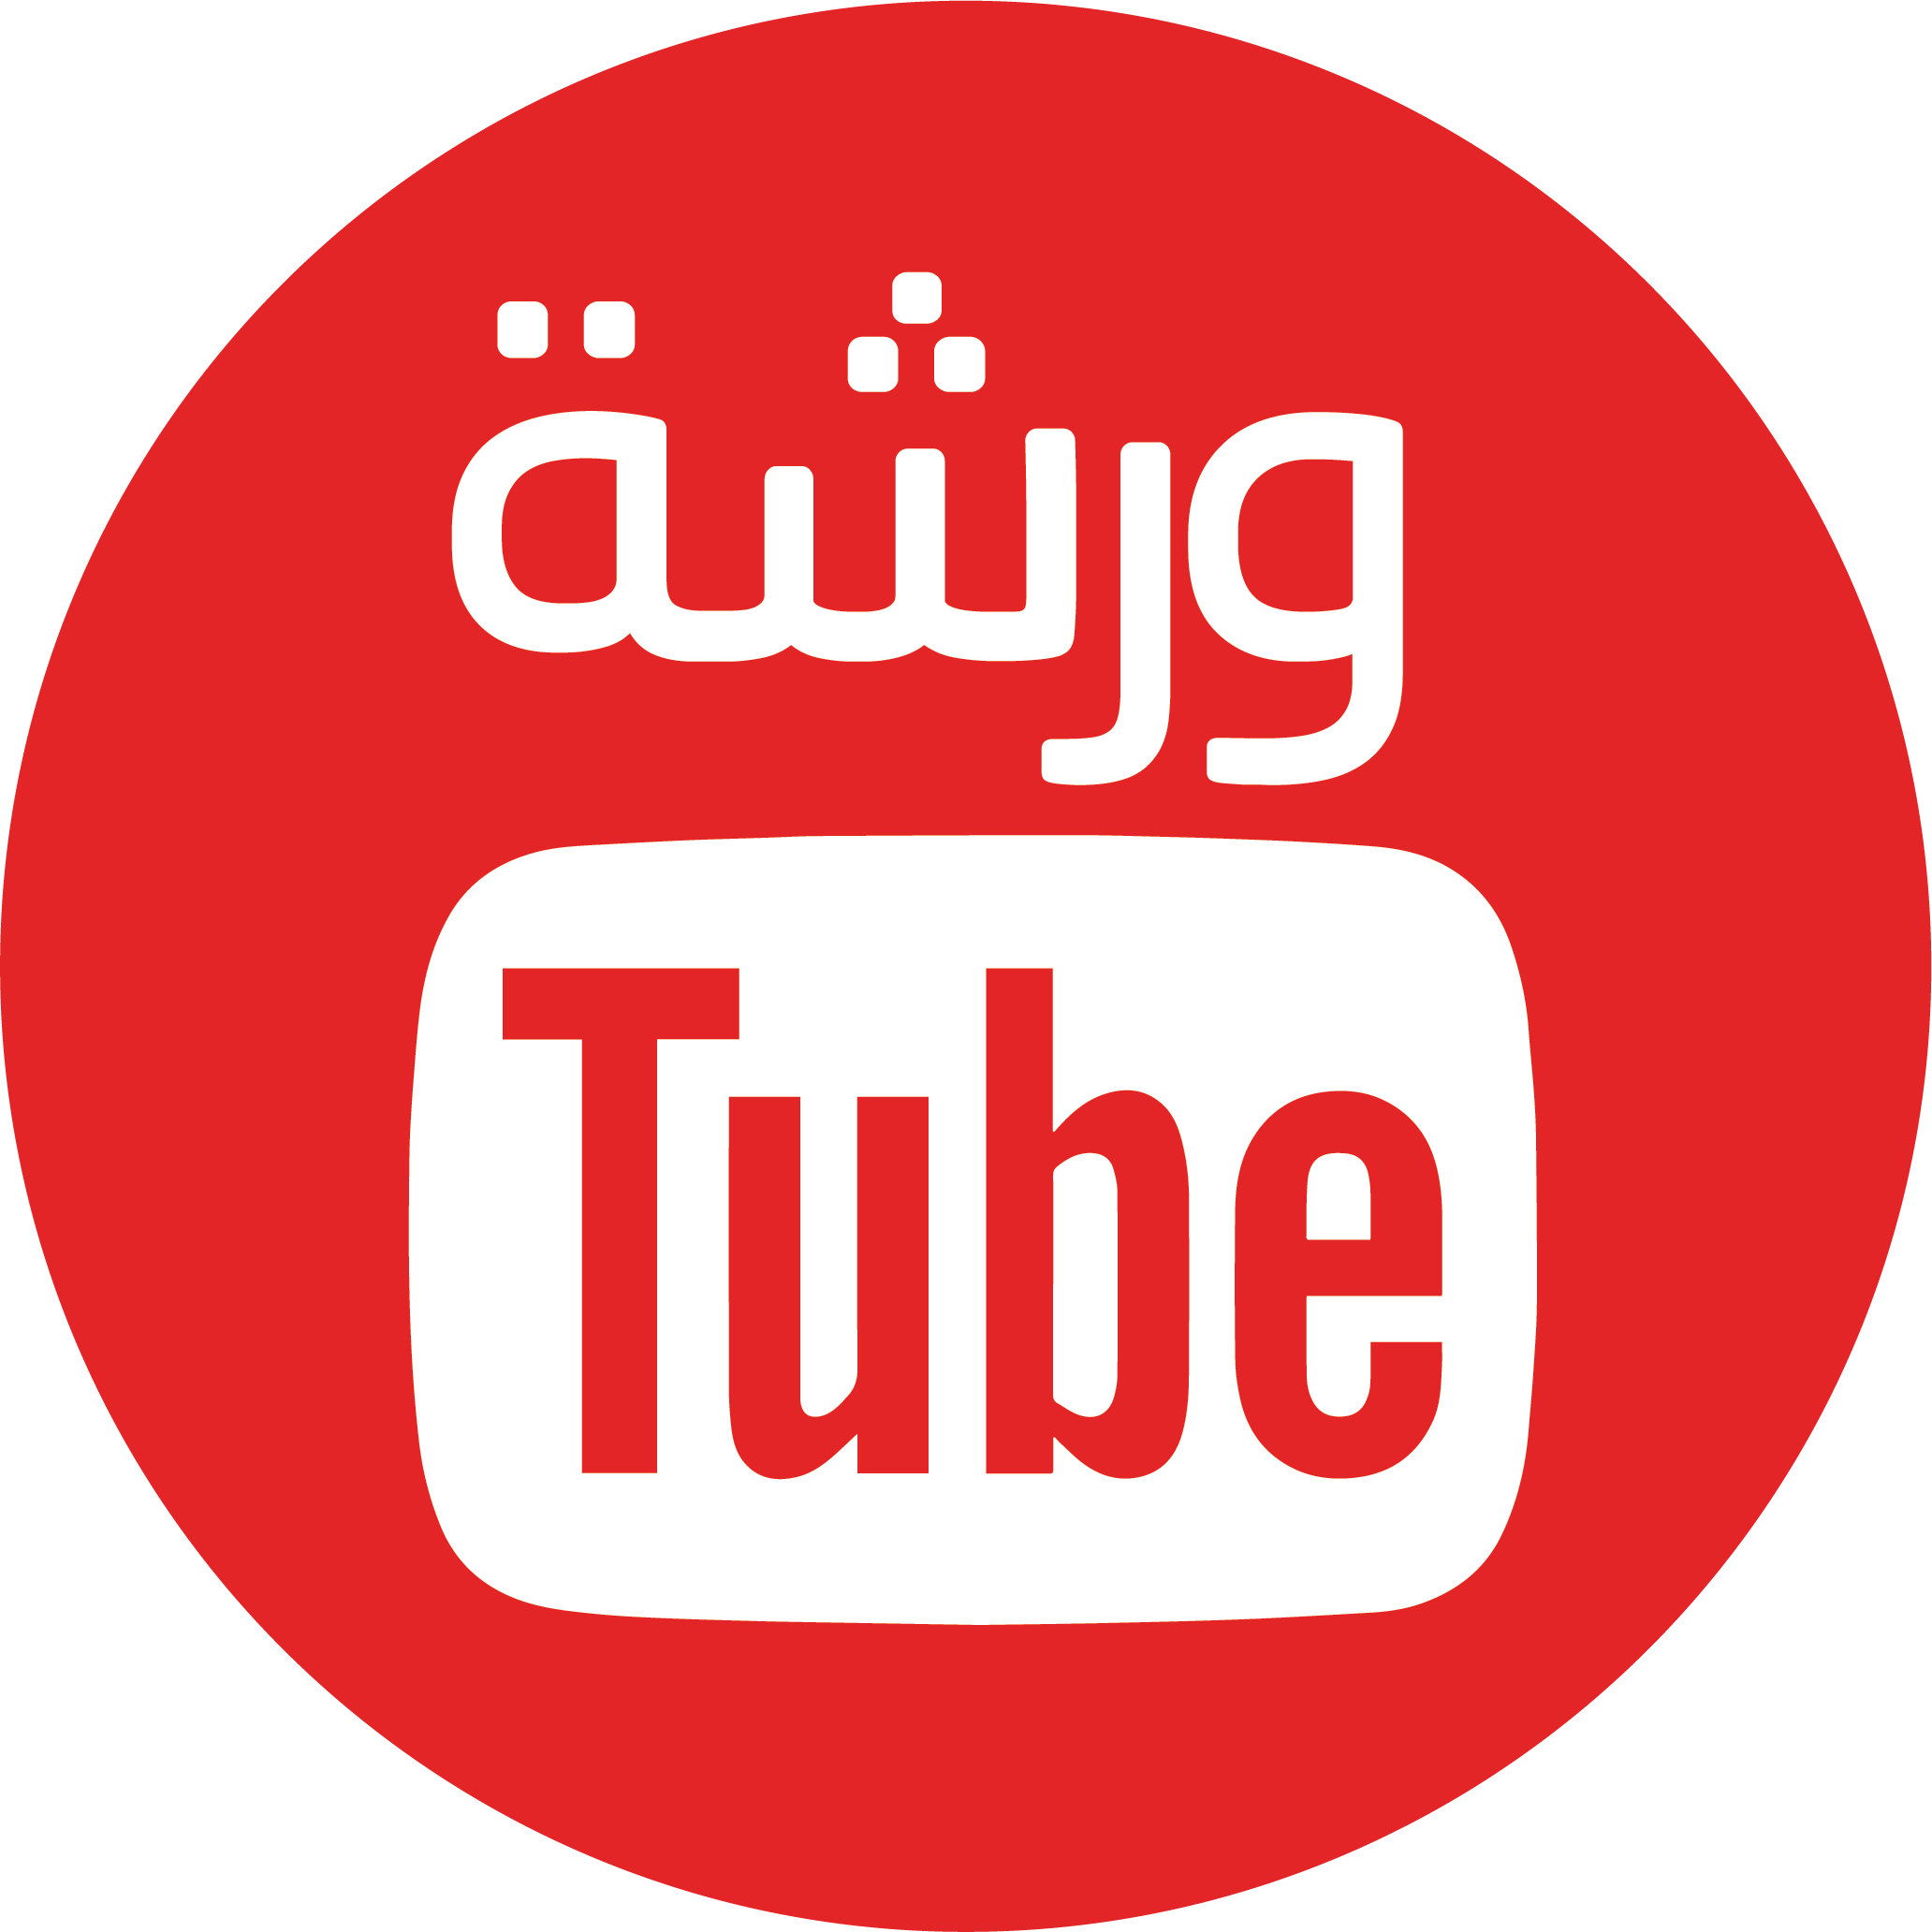 can i use this logo for the youtube channel that i would.